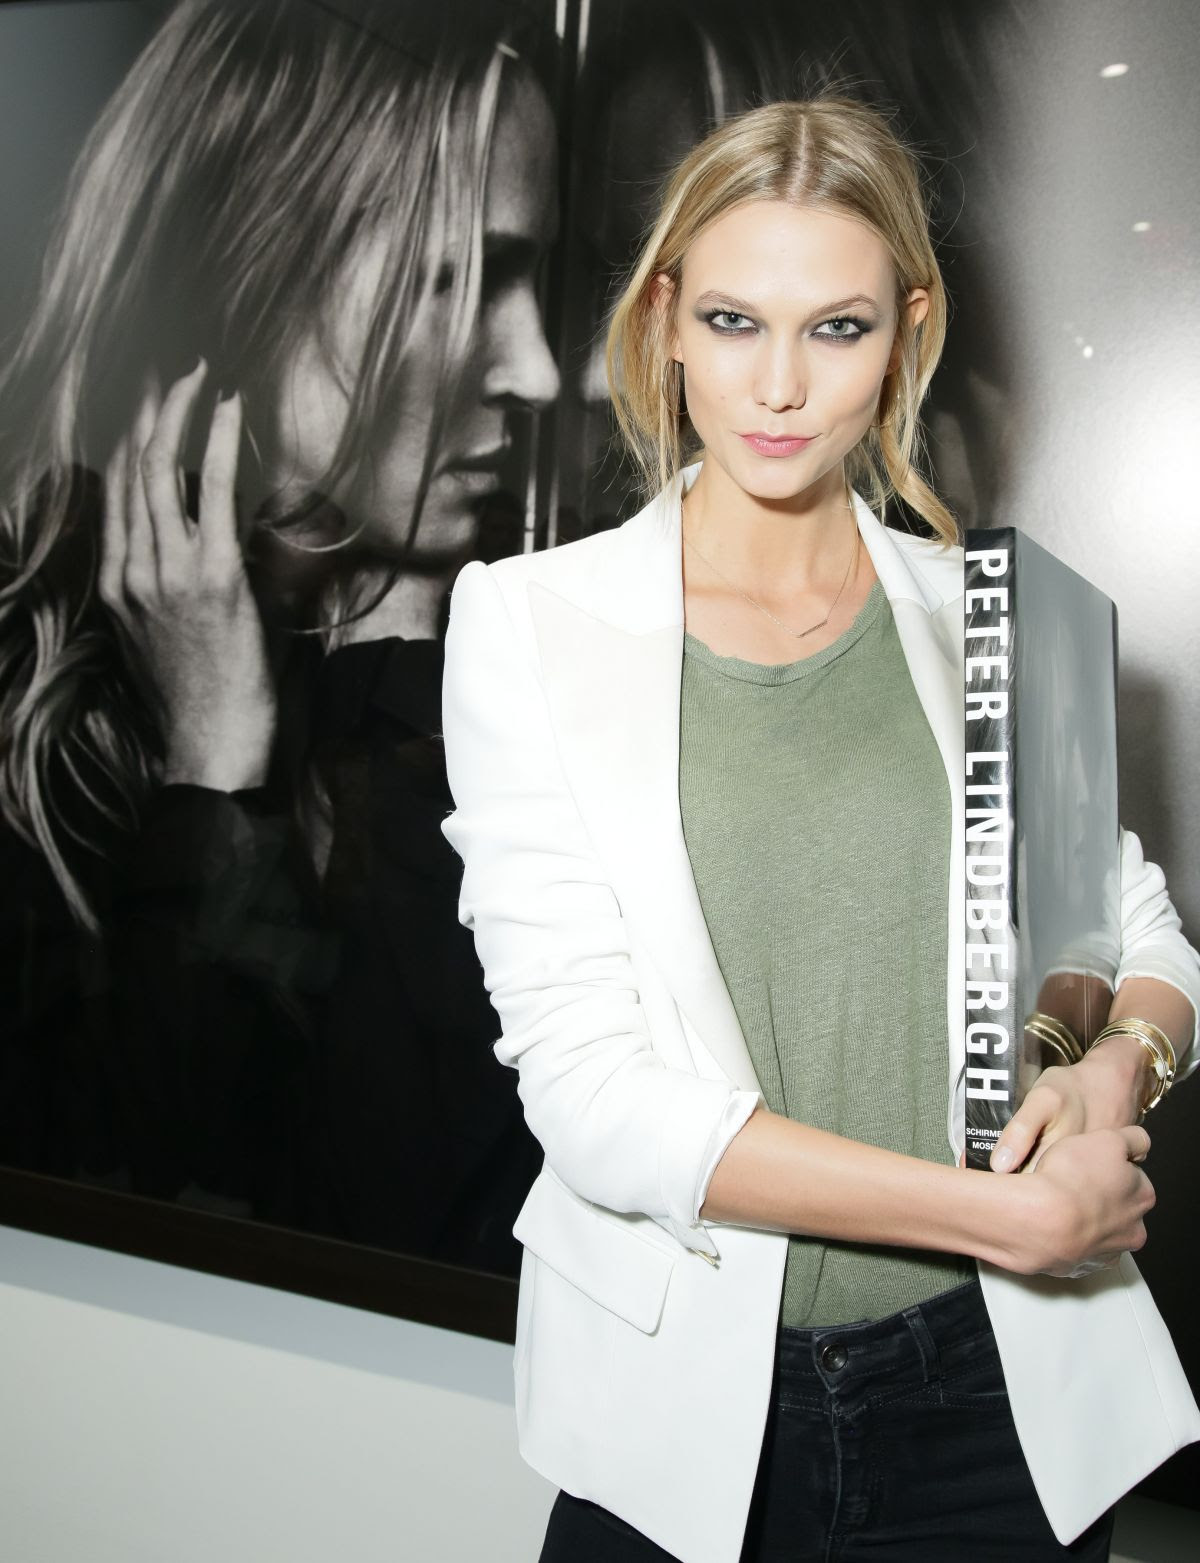 KARLIE KLOSS at Peter Lindbergh Book Signing in New York